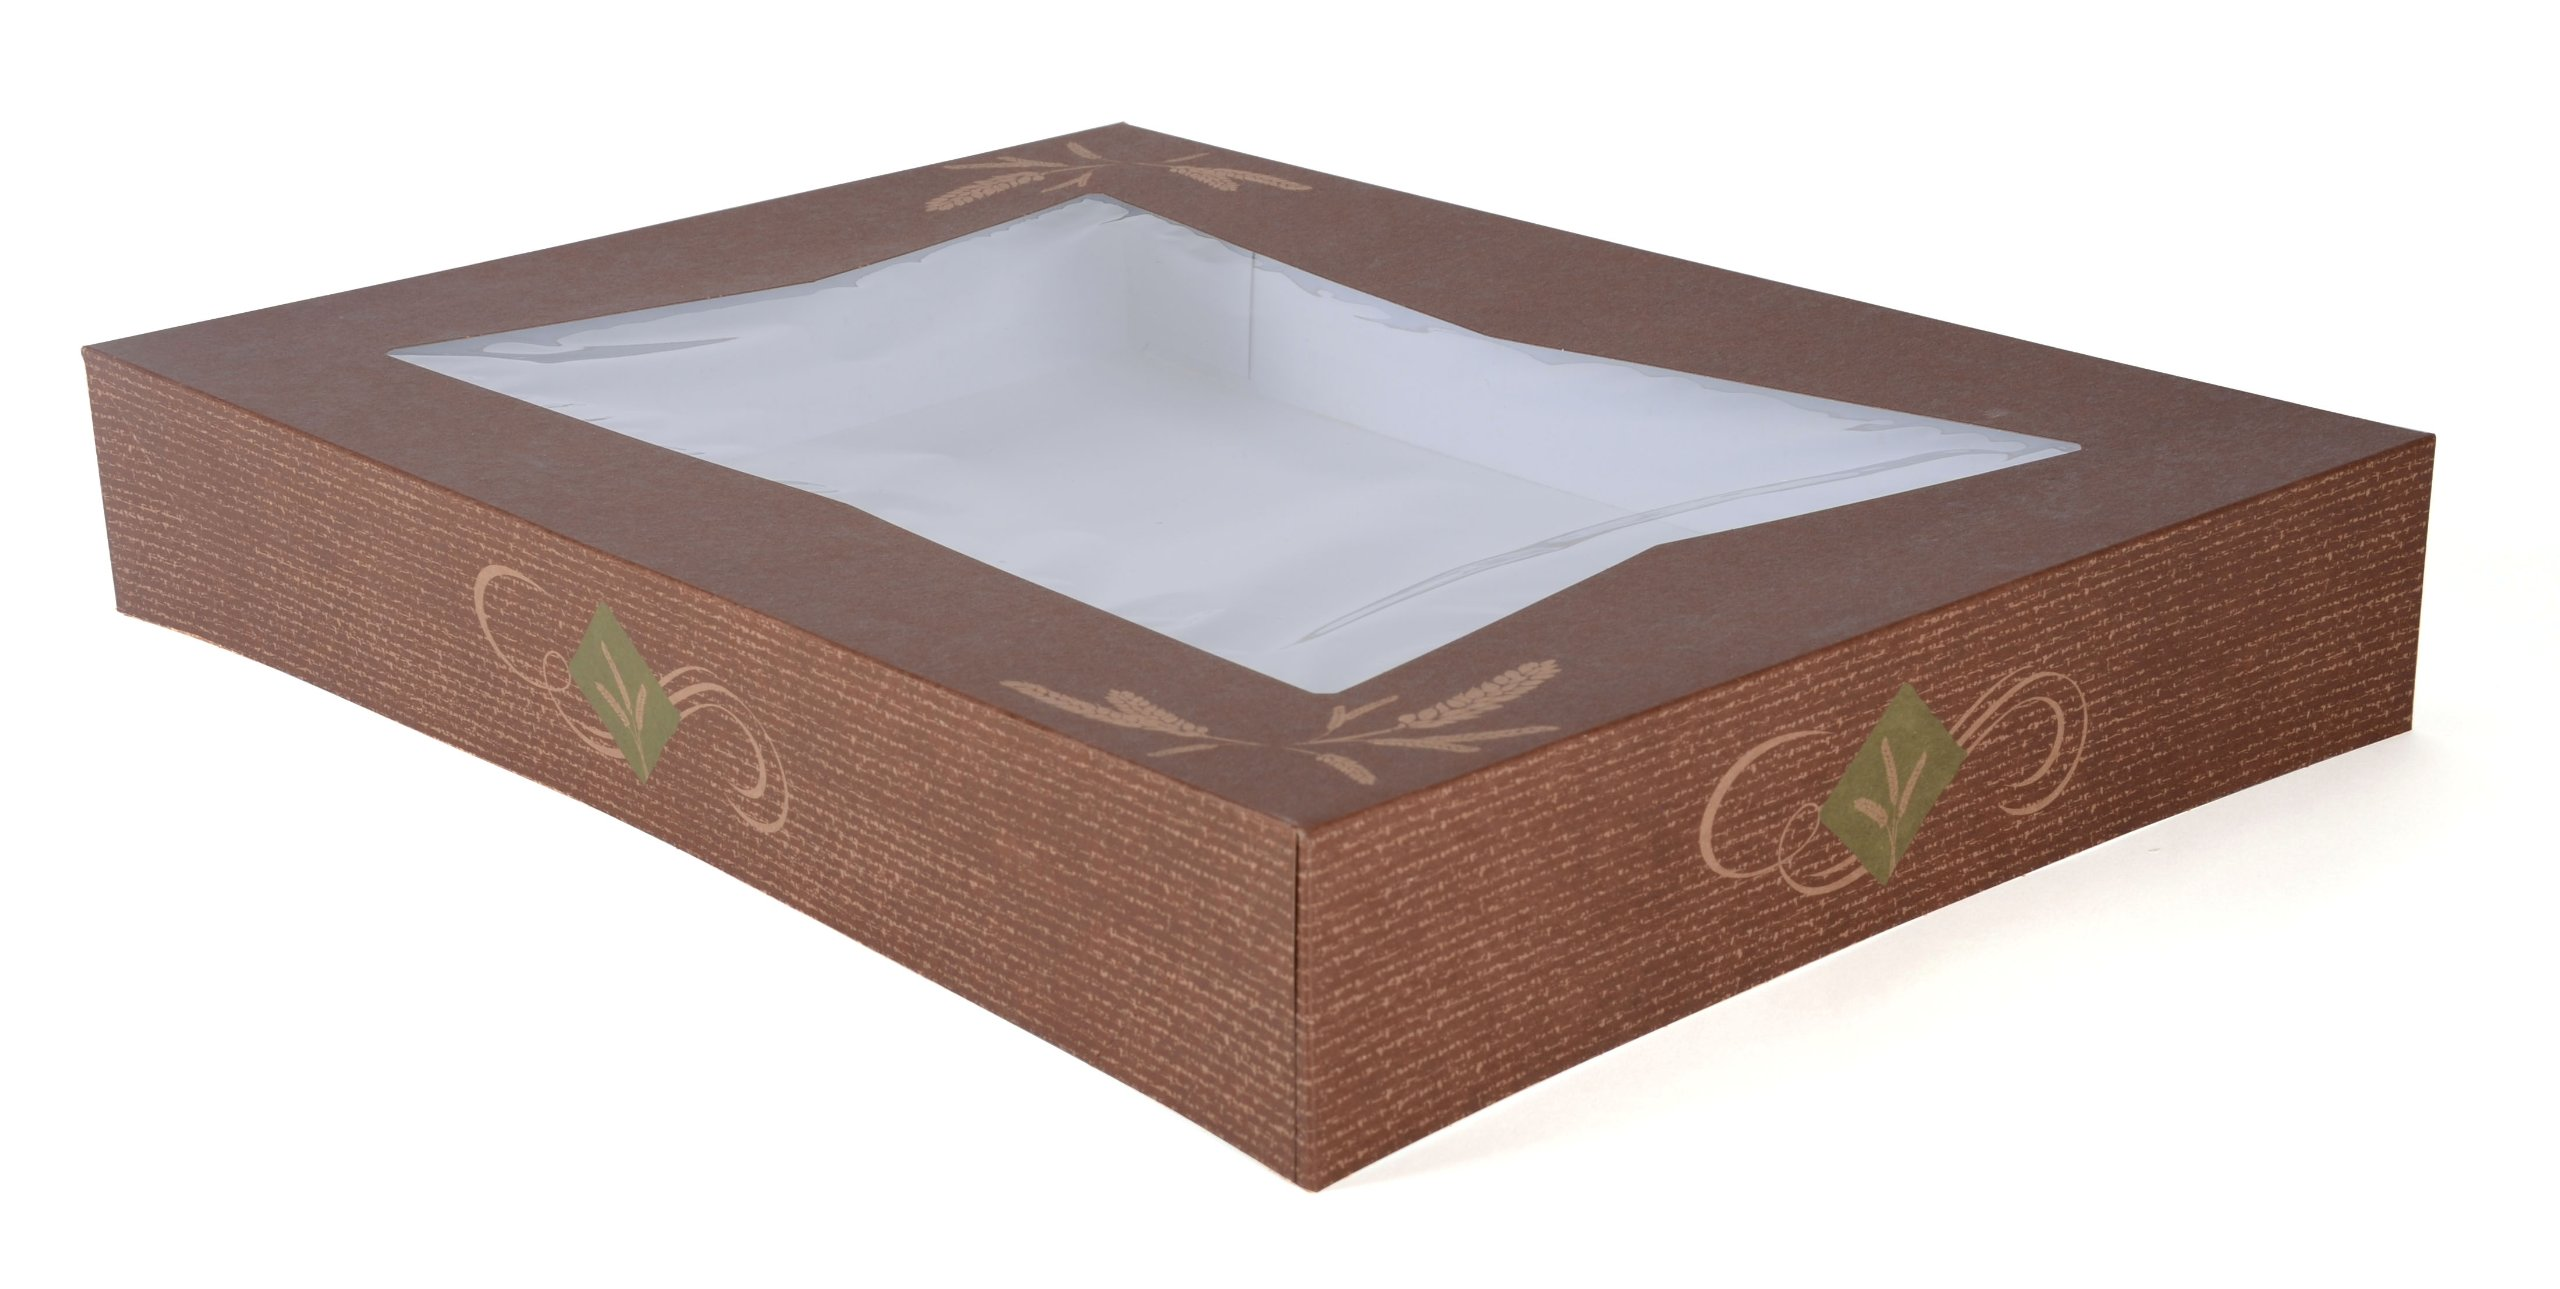 Southern Champion Tray 24156 Paperboard Hearthstone Bakery Half Sheet Cake Box Top with Window, Clay Coated, Fits Corrugated Bottom #1177, 19'' Length x 14'' Width x 3'' Height, (Pack of 50)